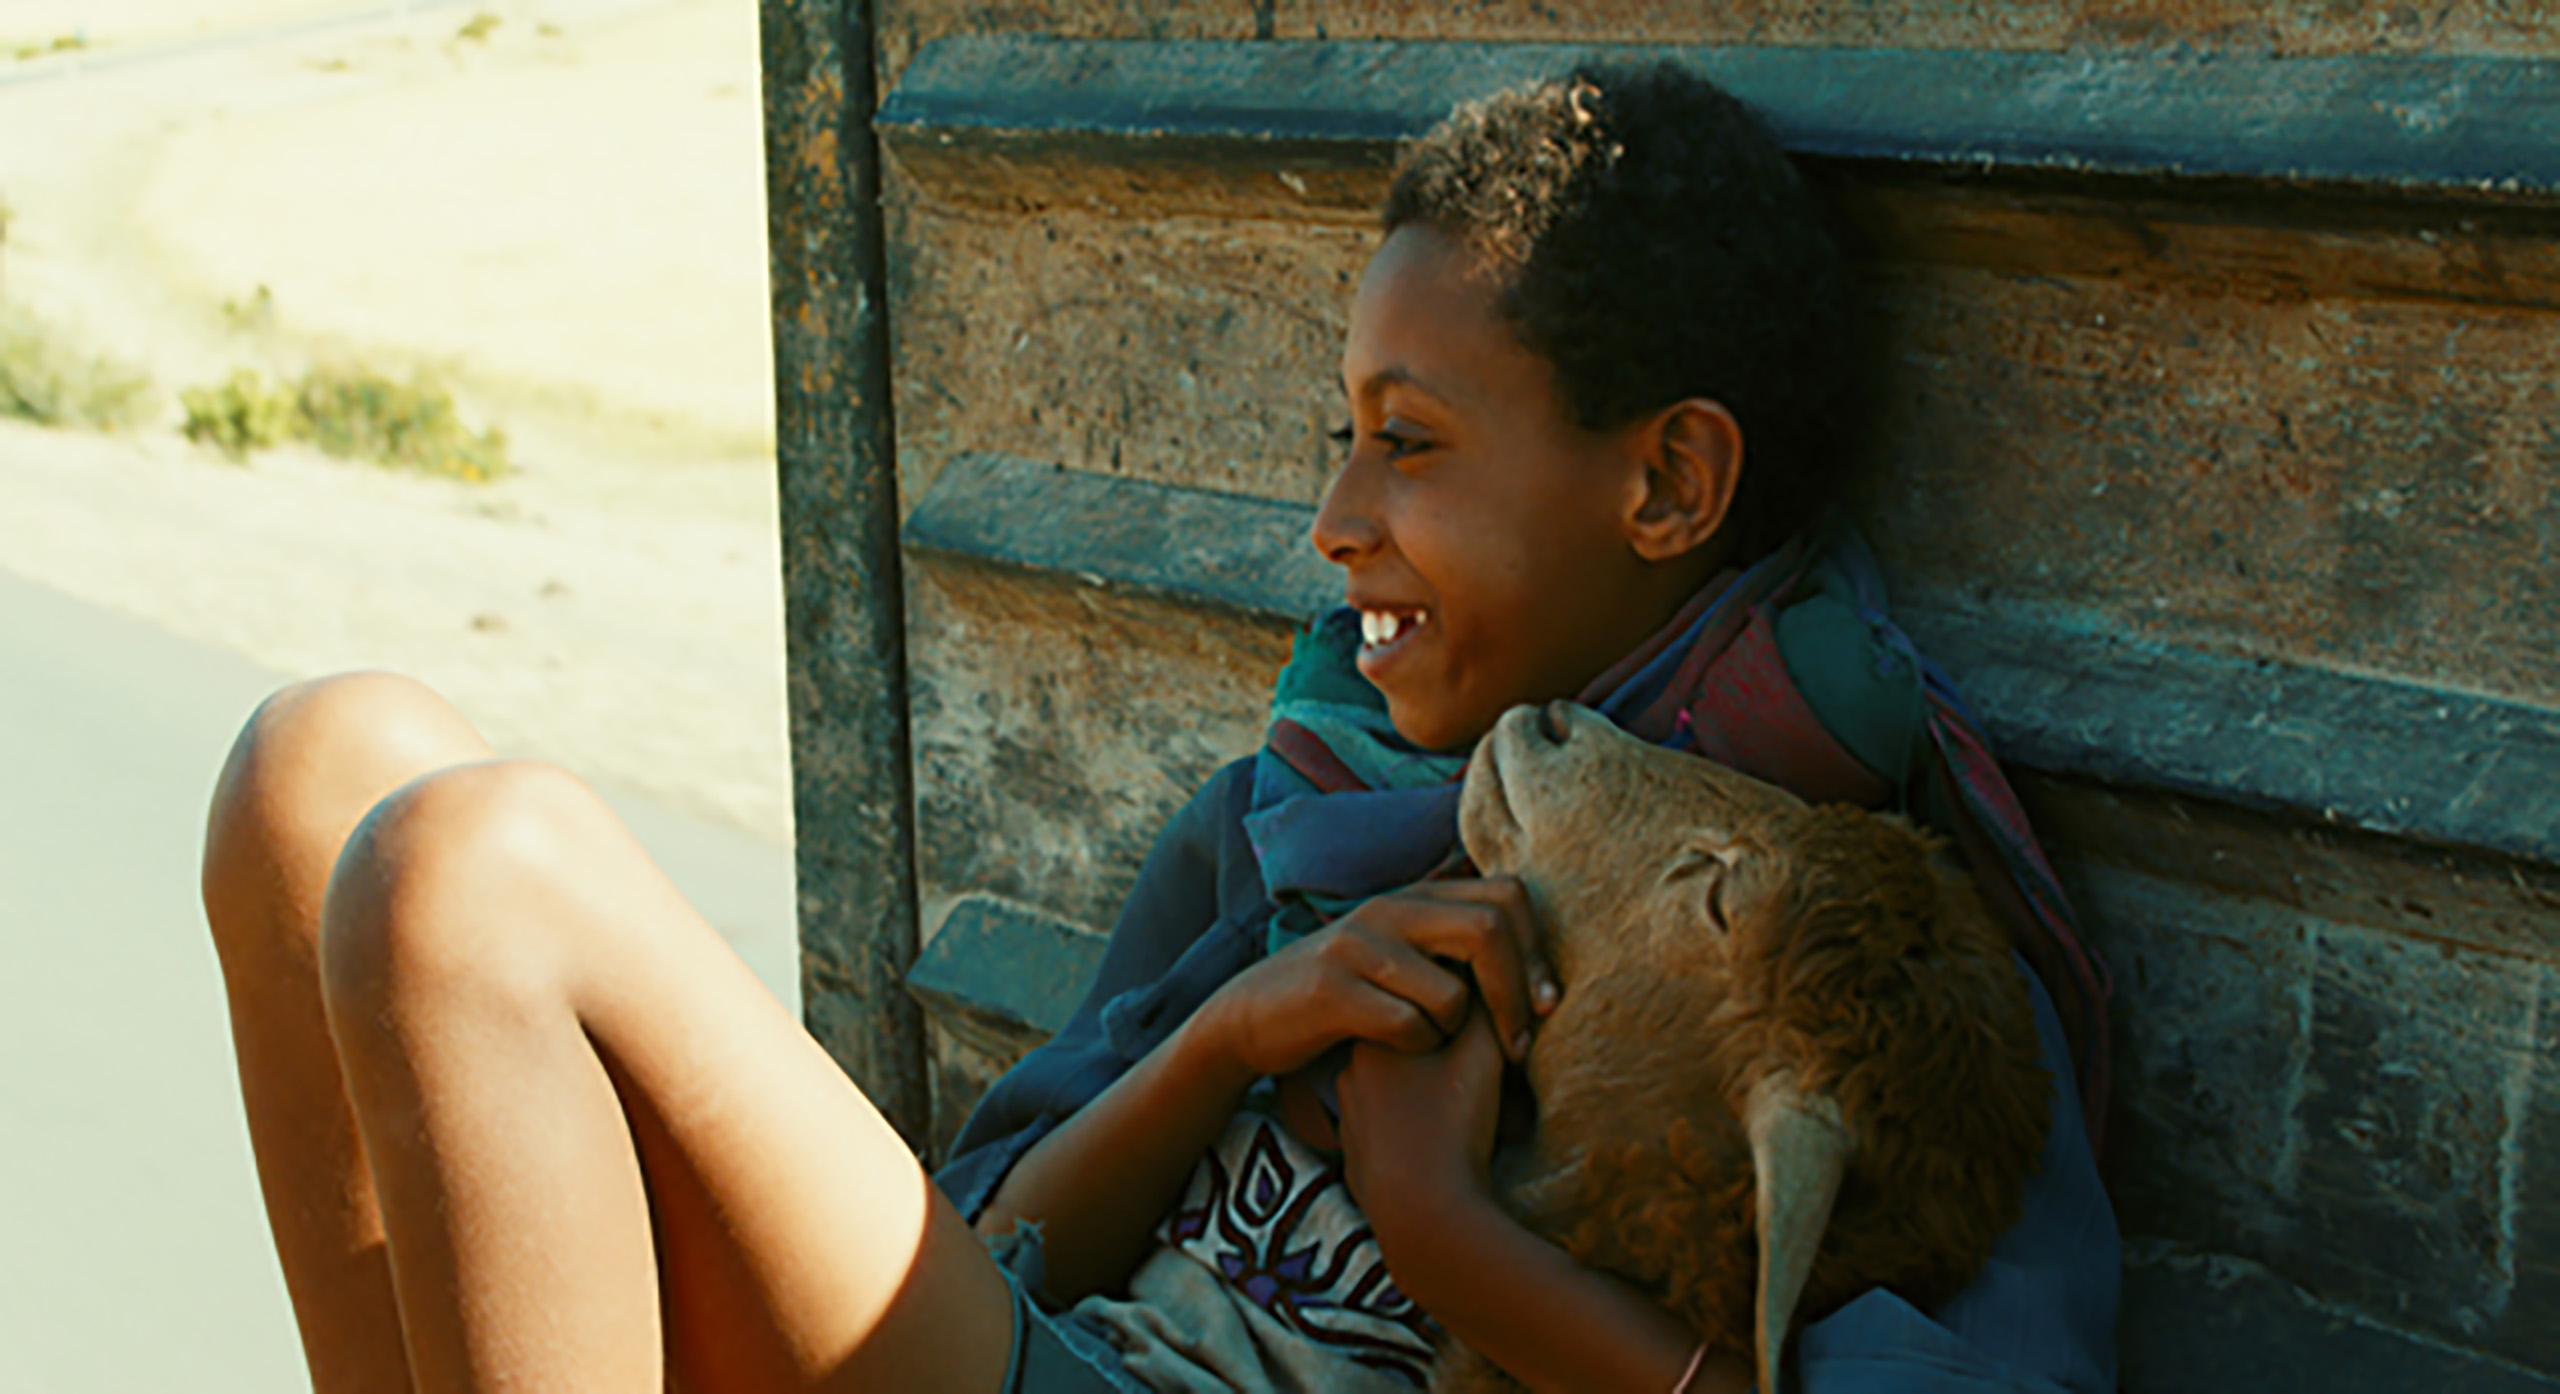 Movie Lamb Small Ethiopian boy sitting against a wall with his knees up cuddling his rust colored sheep and smiling